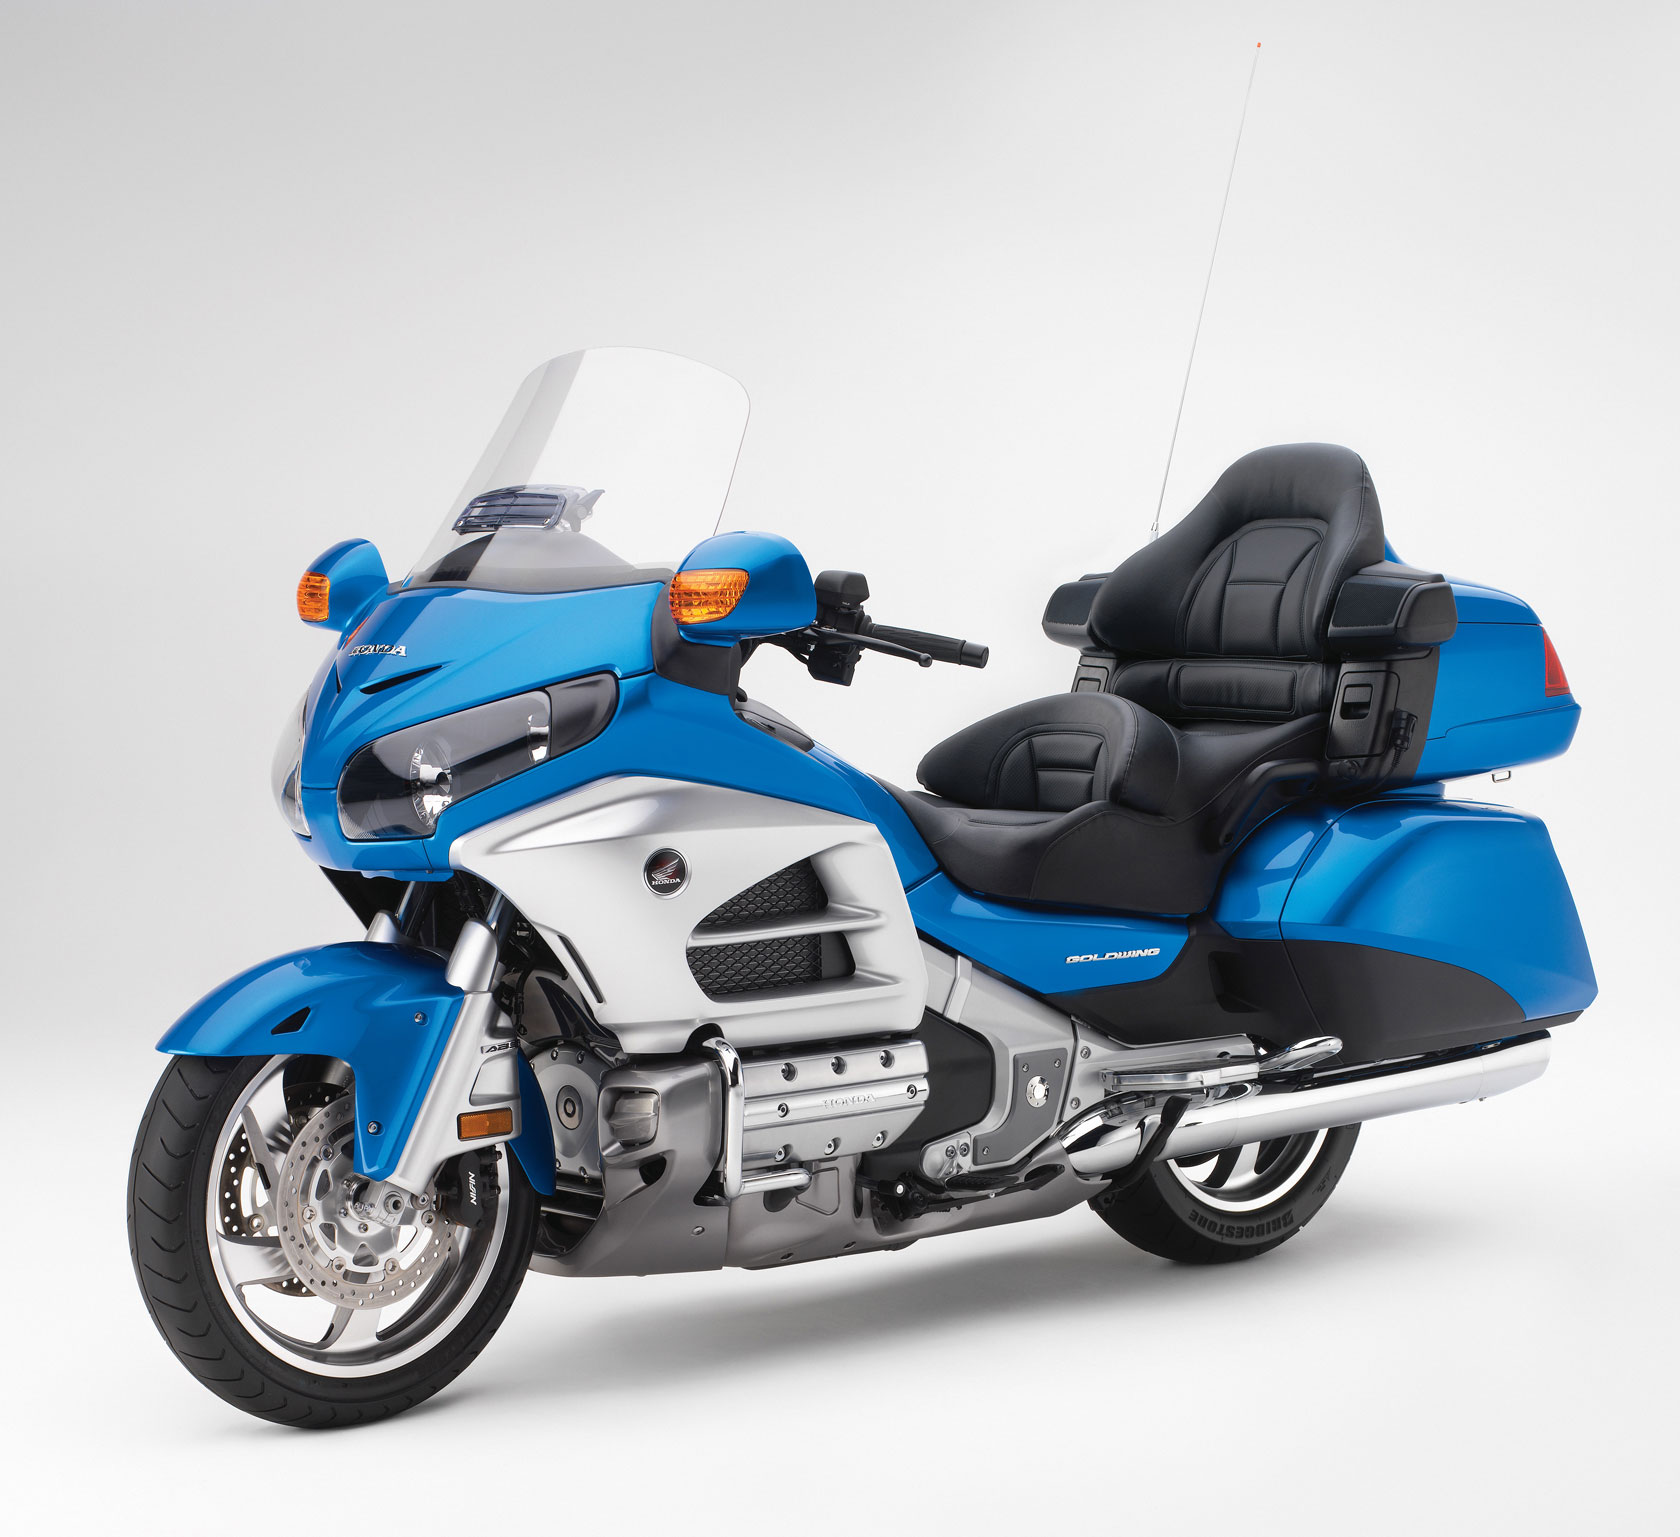 Honda GL 1800 Gold Wing 2013 images #83165